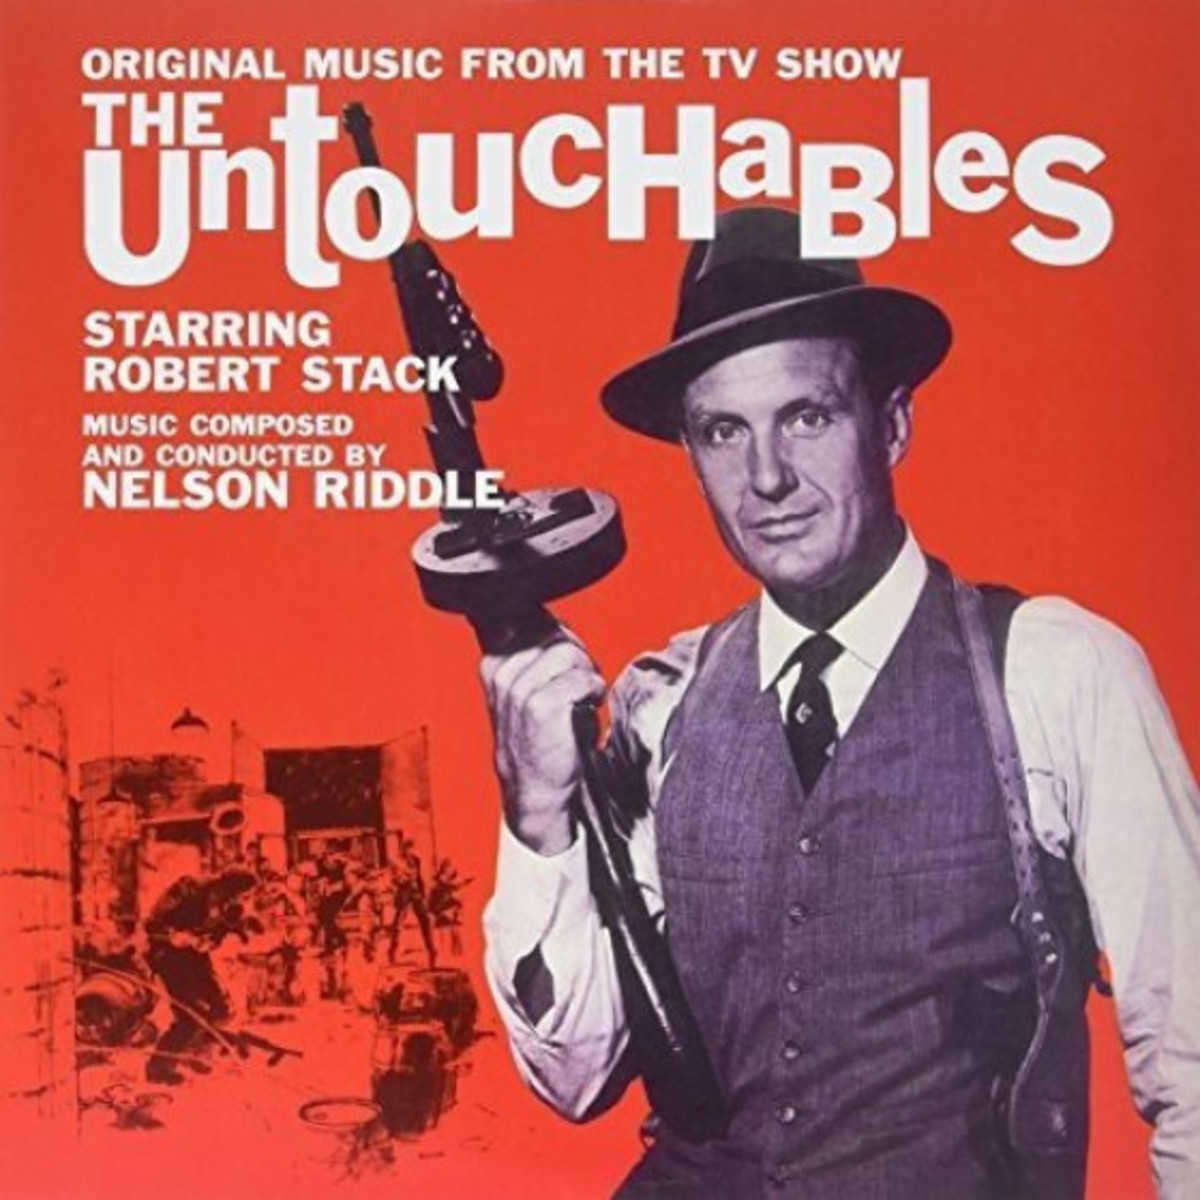 Robert Stack of 'The Untouchables'